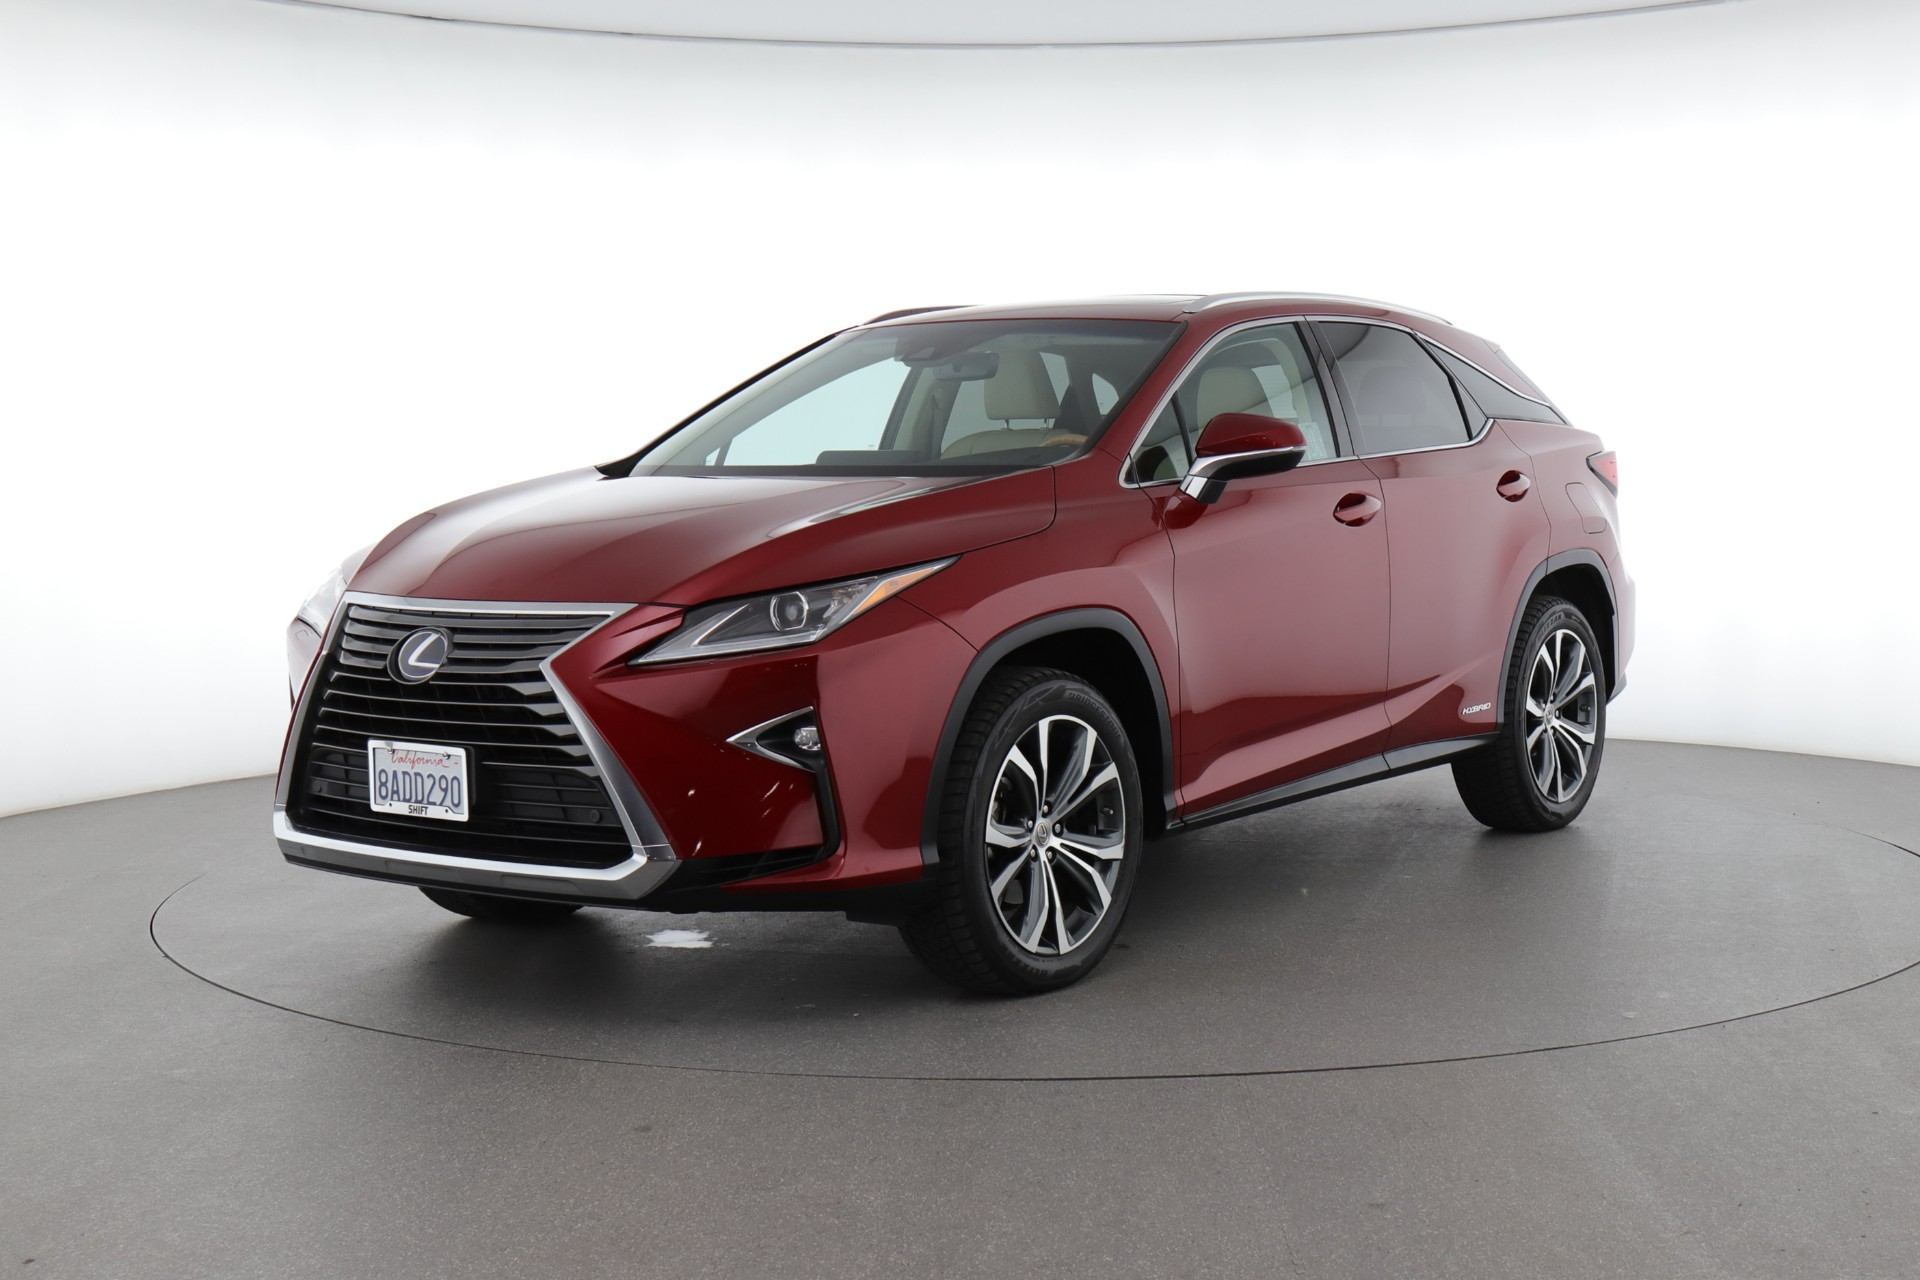 2017 Lexus RX 450h (from $41,500)